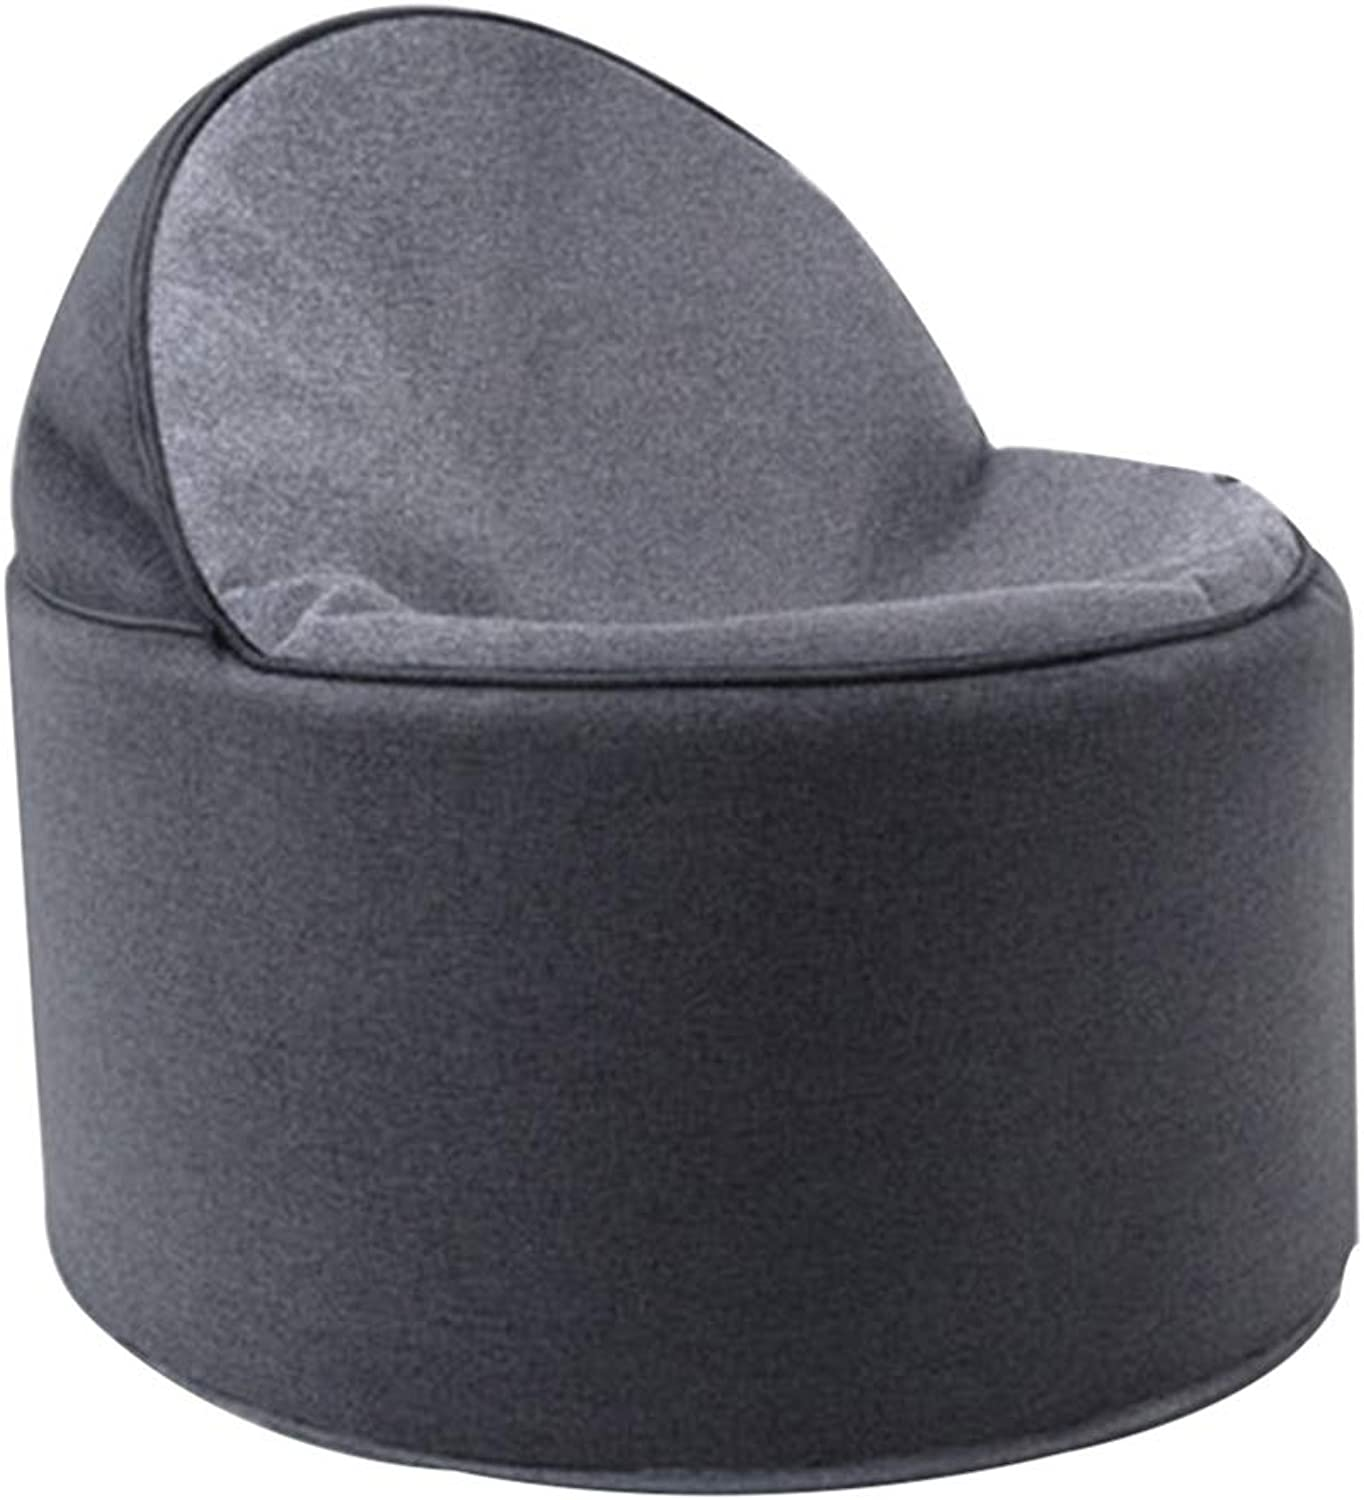 BYPING Pouffes And Footstools Living Room Foldable Breathable Portable Cotton and Linen Wear-Resistant, 2 colors (color   Black, Size   30x55x57CM)